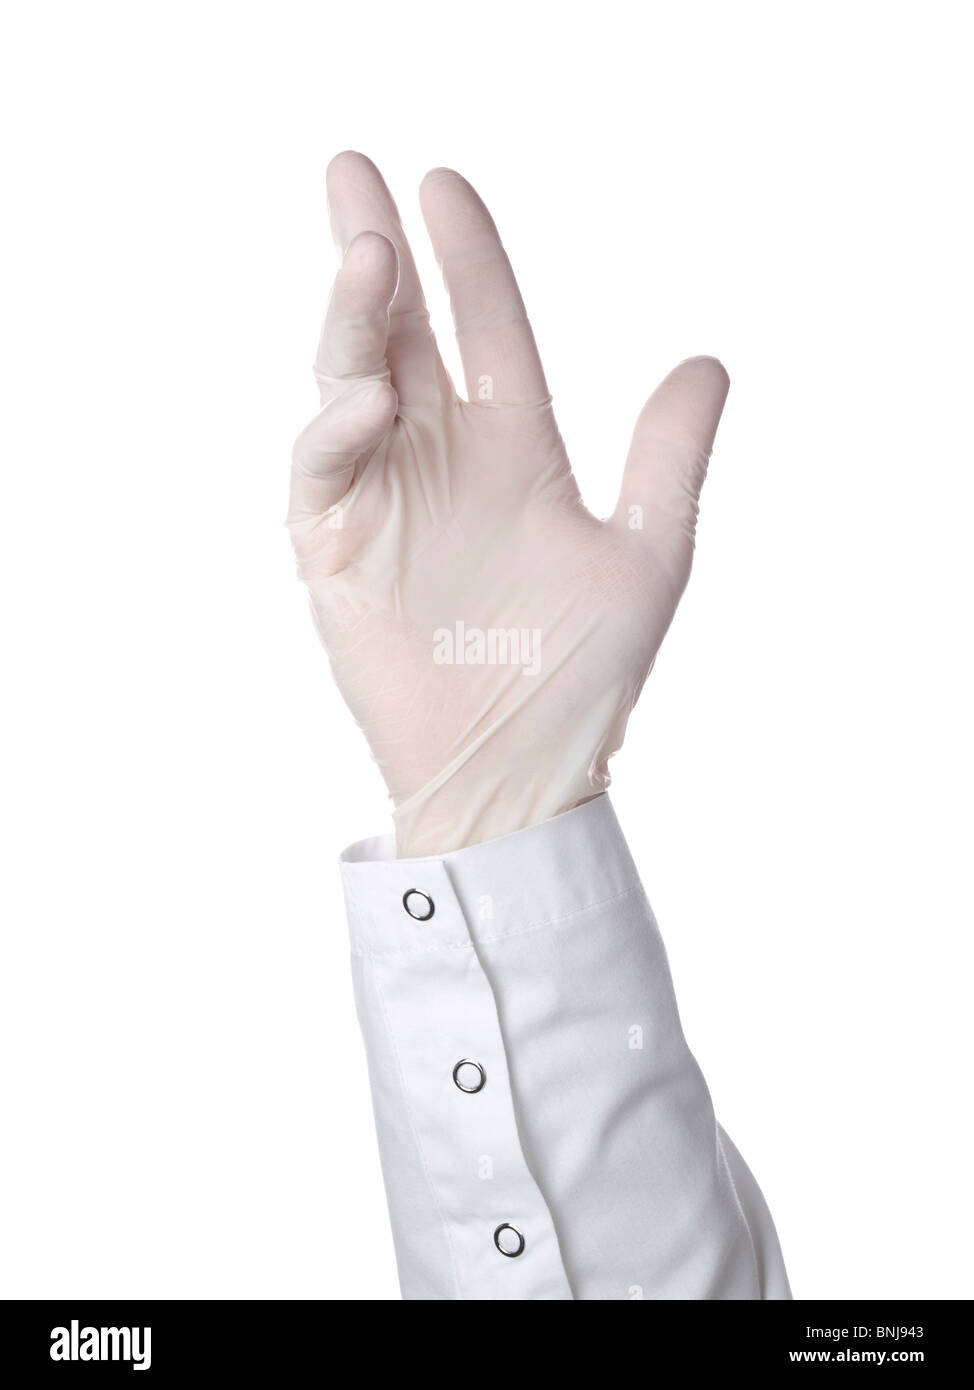 A doctor is wearing a latex glove. - Stock Image